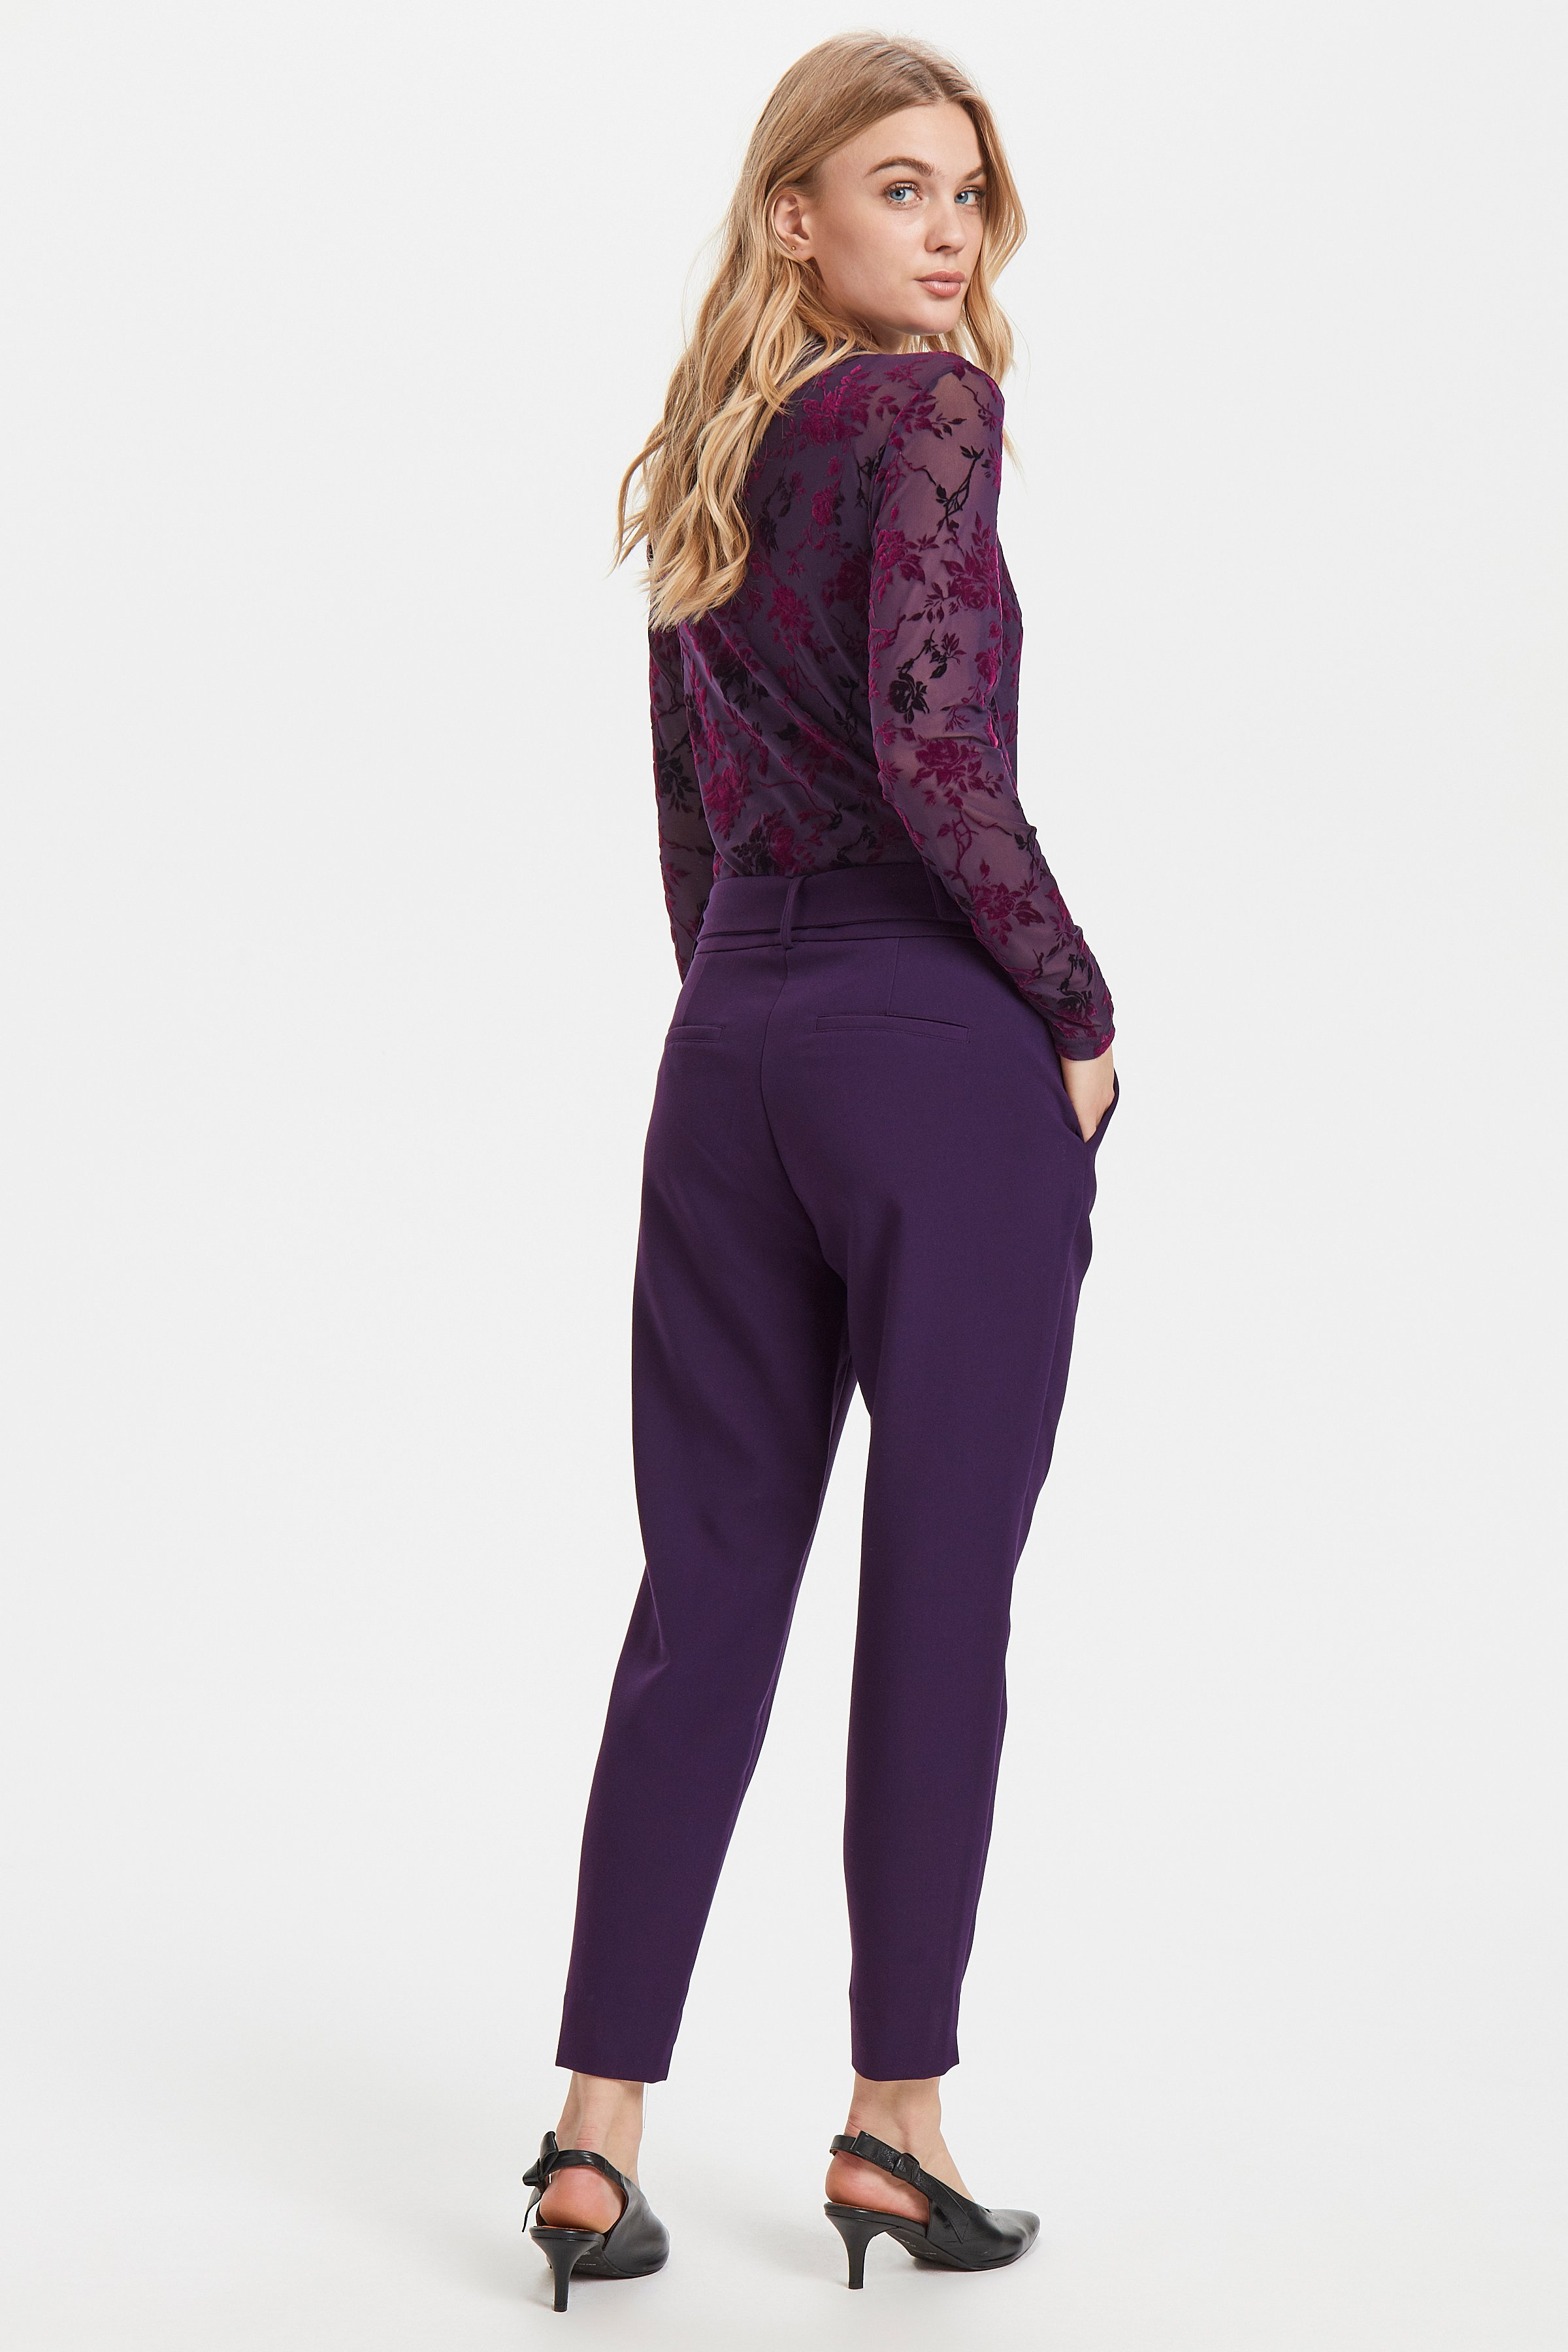 Blackberry Purple Pants Suiting fra b.young – Køb Blackberry Purple Pants Suiting fra str. 36-46 her